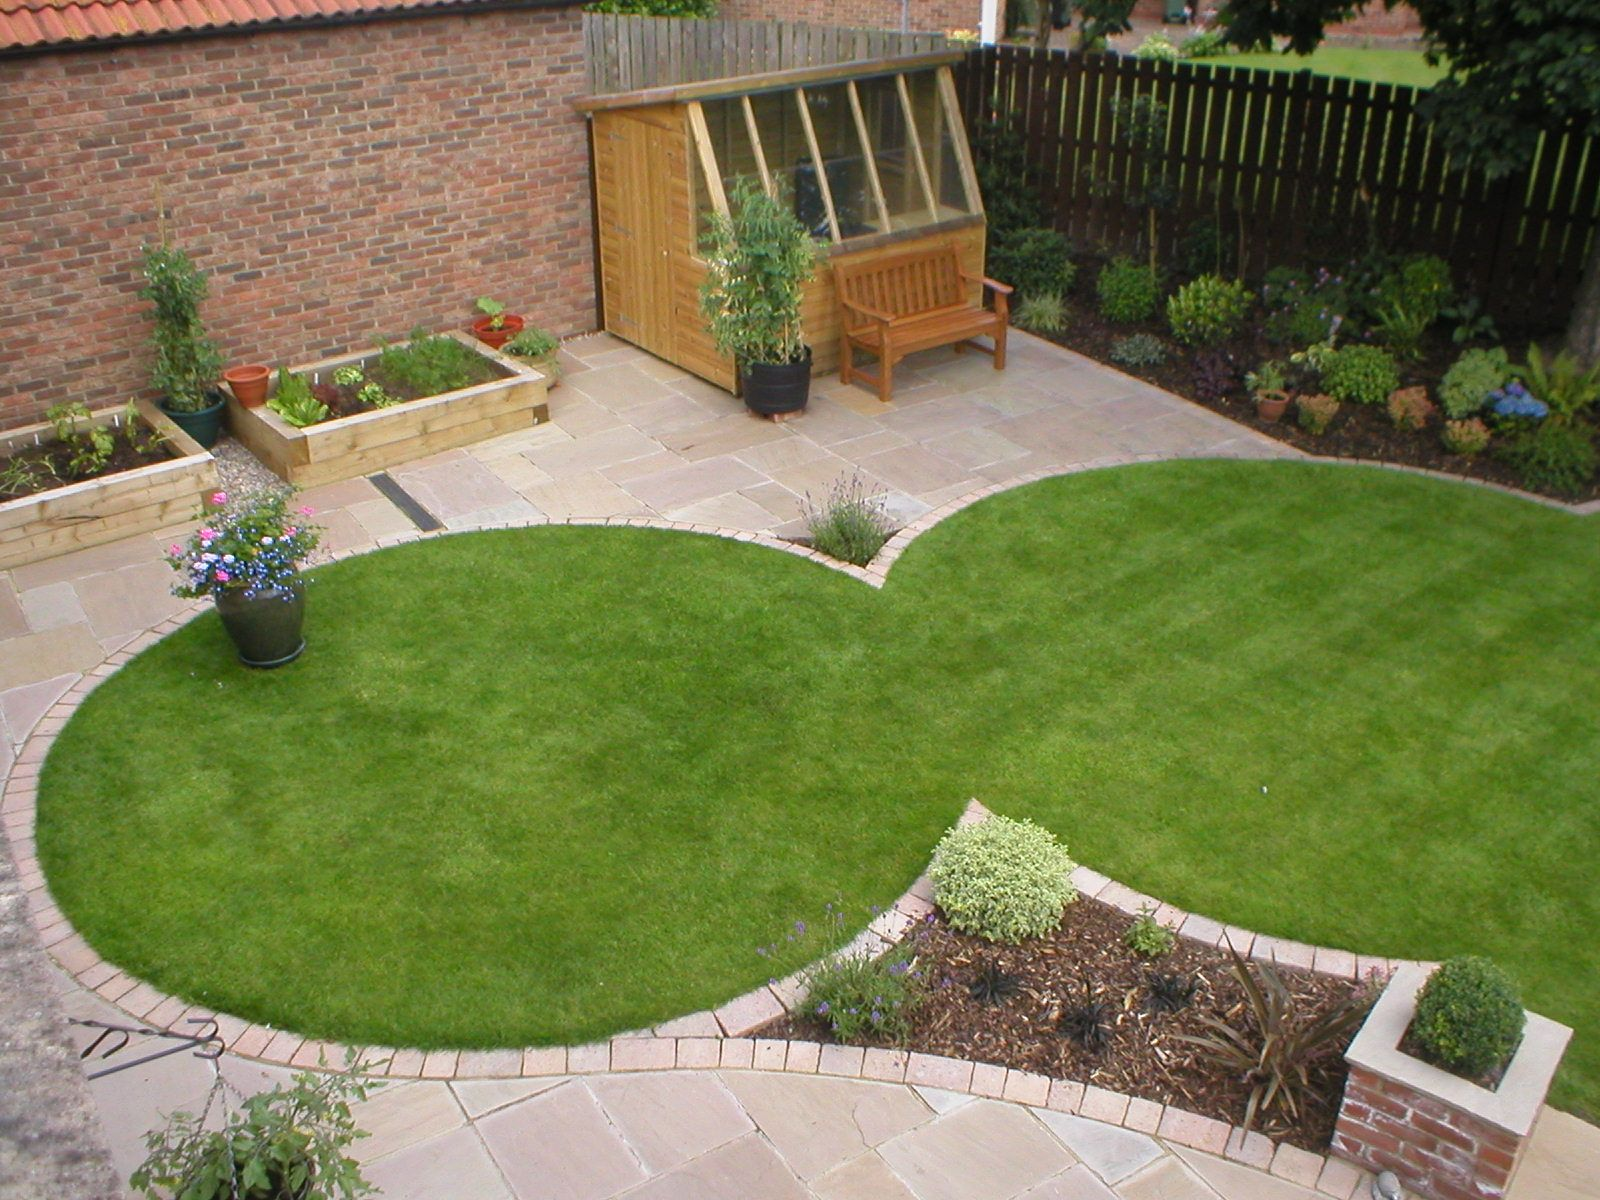 Superbe Small Garden Design · Circular Lawns Create Space For Paving For Our  Clients In Poppleton, York.